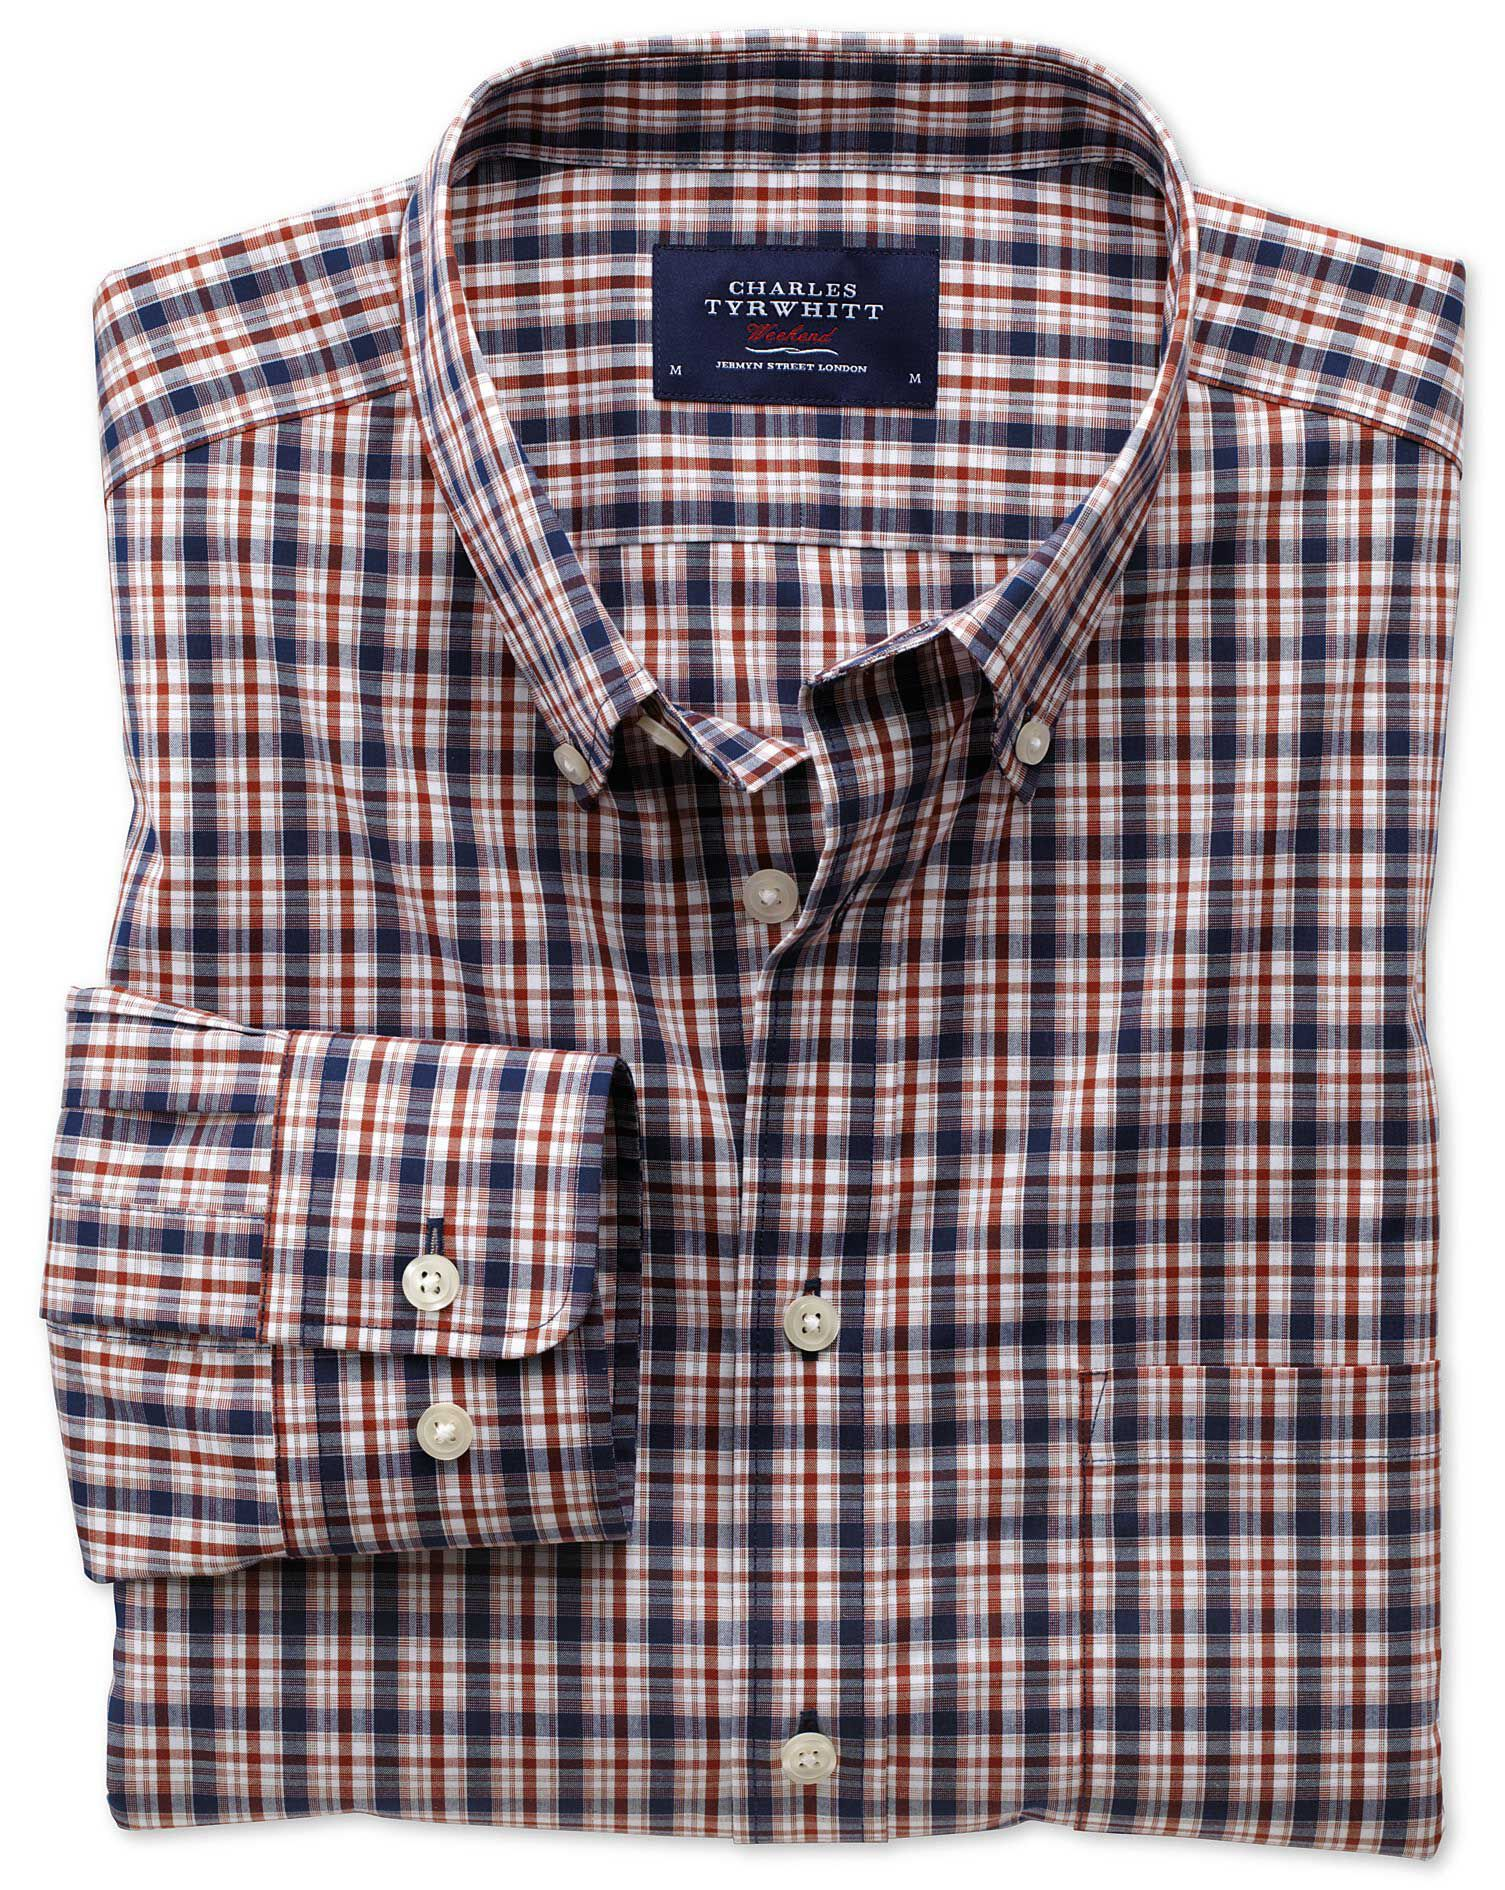 Extra Slim Fit Non-Iron Poplin Blue and Orange Check Cotton Shirt Single Cuff Size Medium by Charles